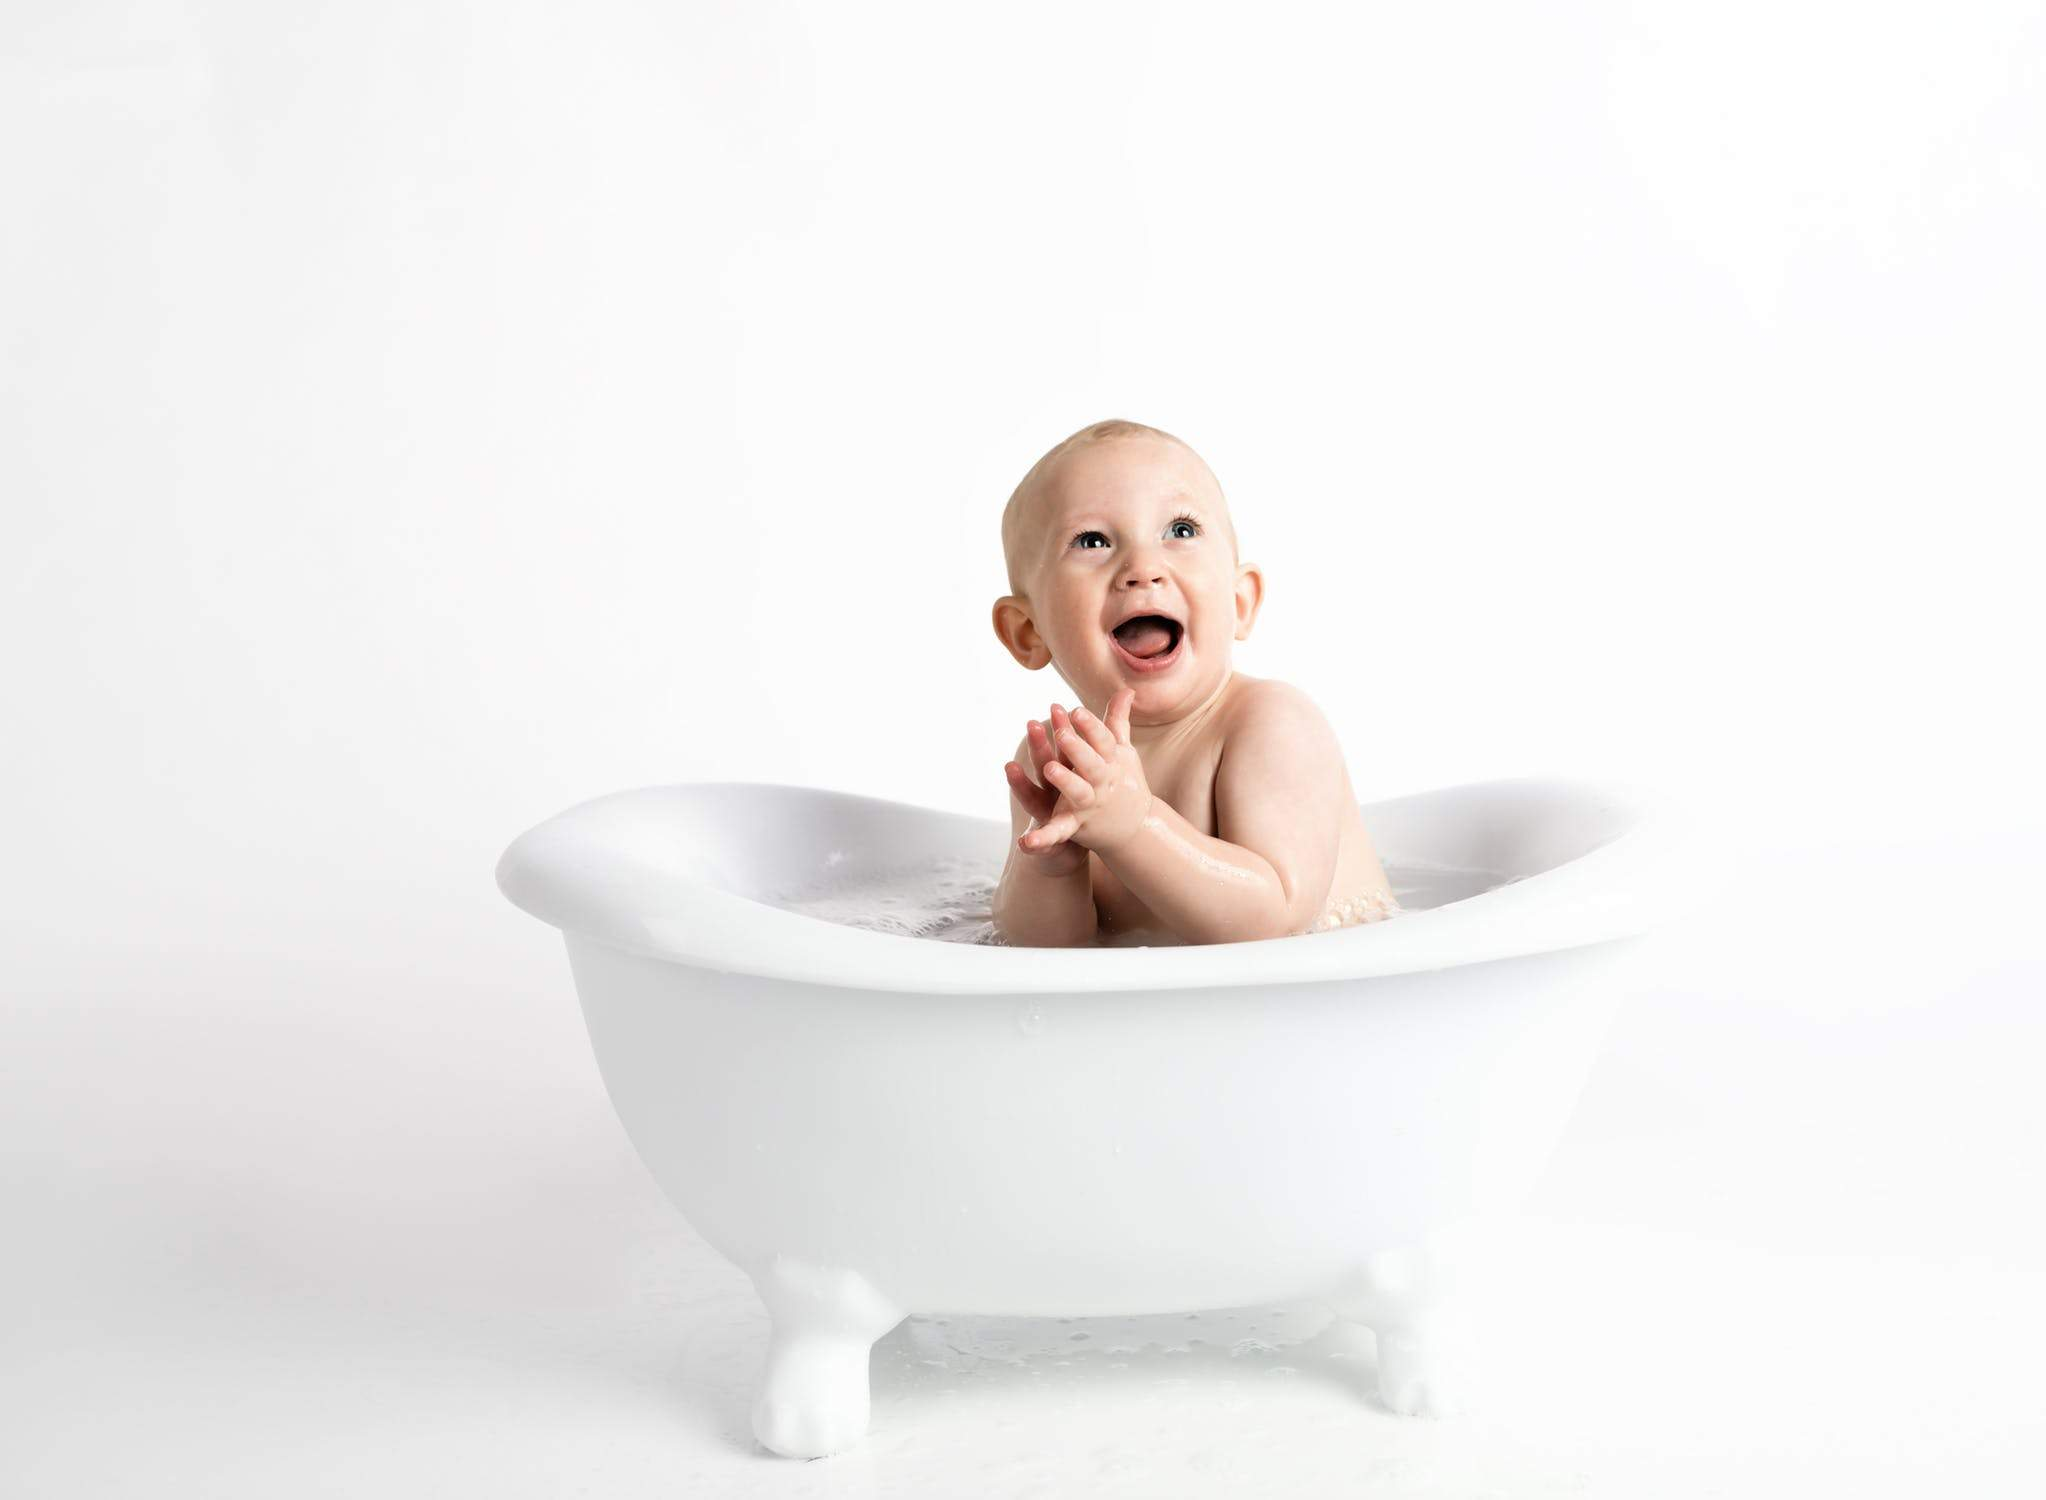 8 Top Tips for a Super Fun Bath Time